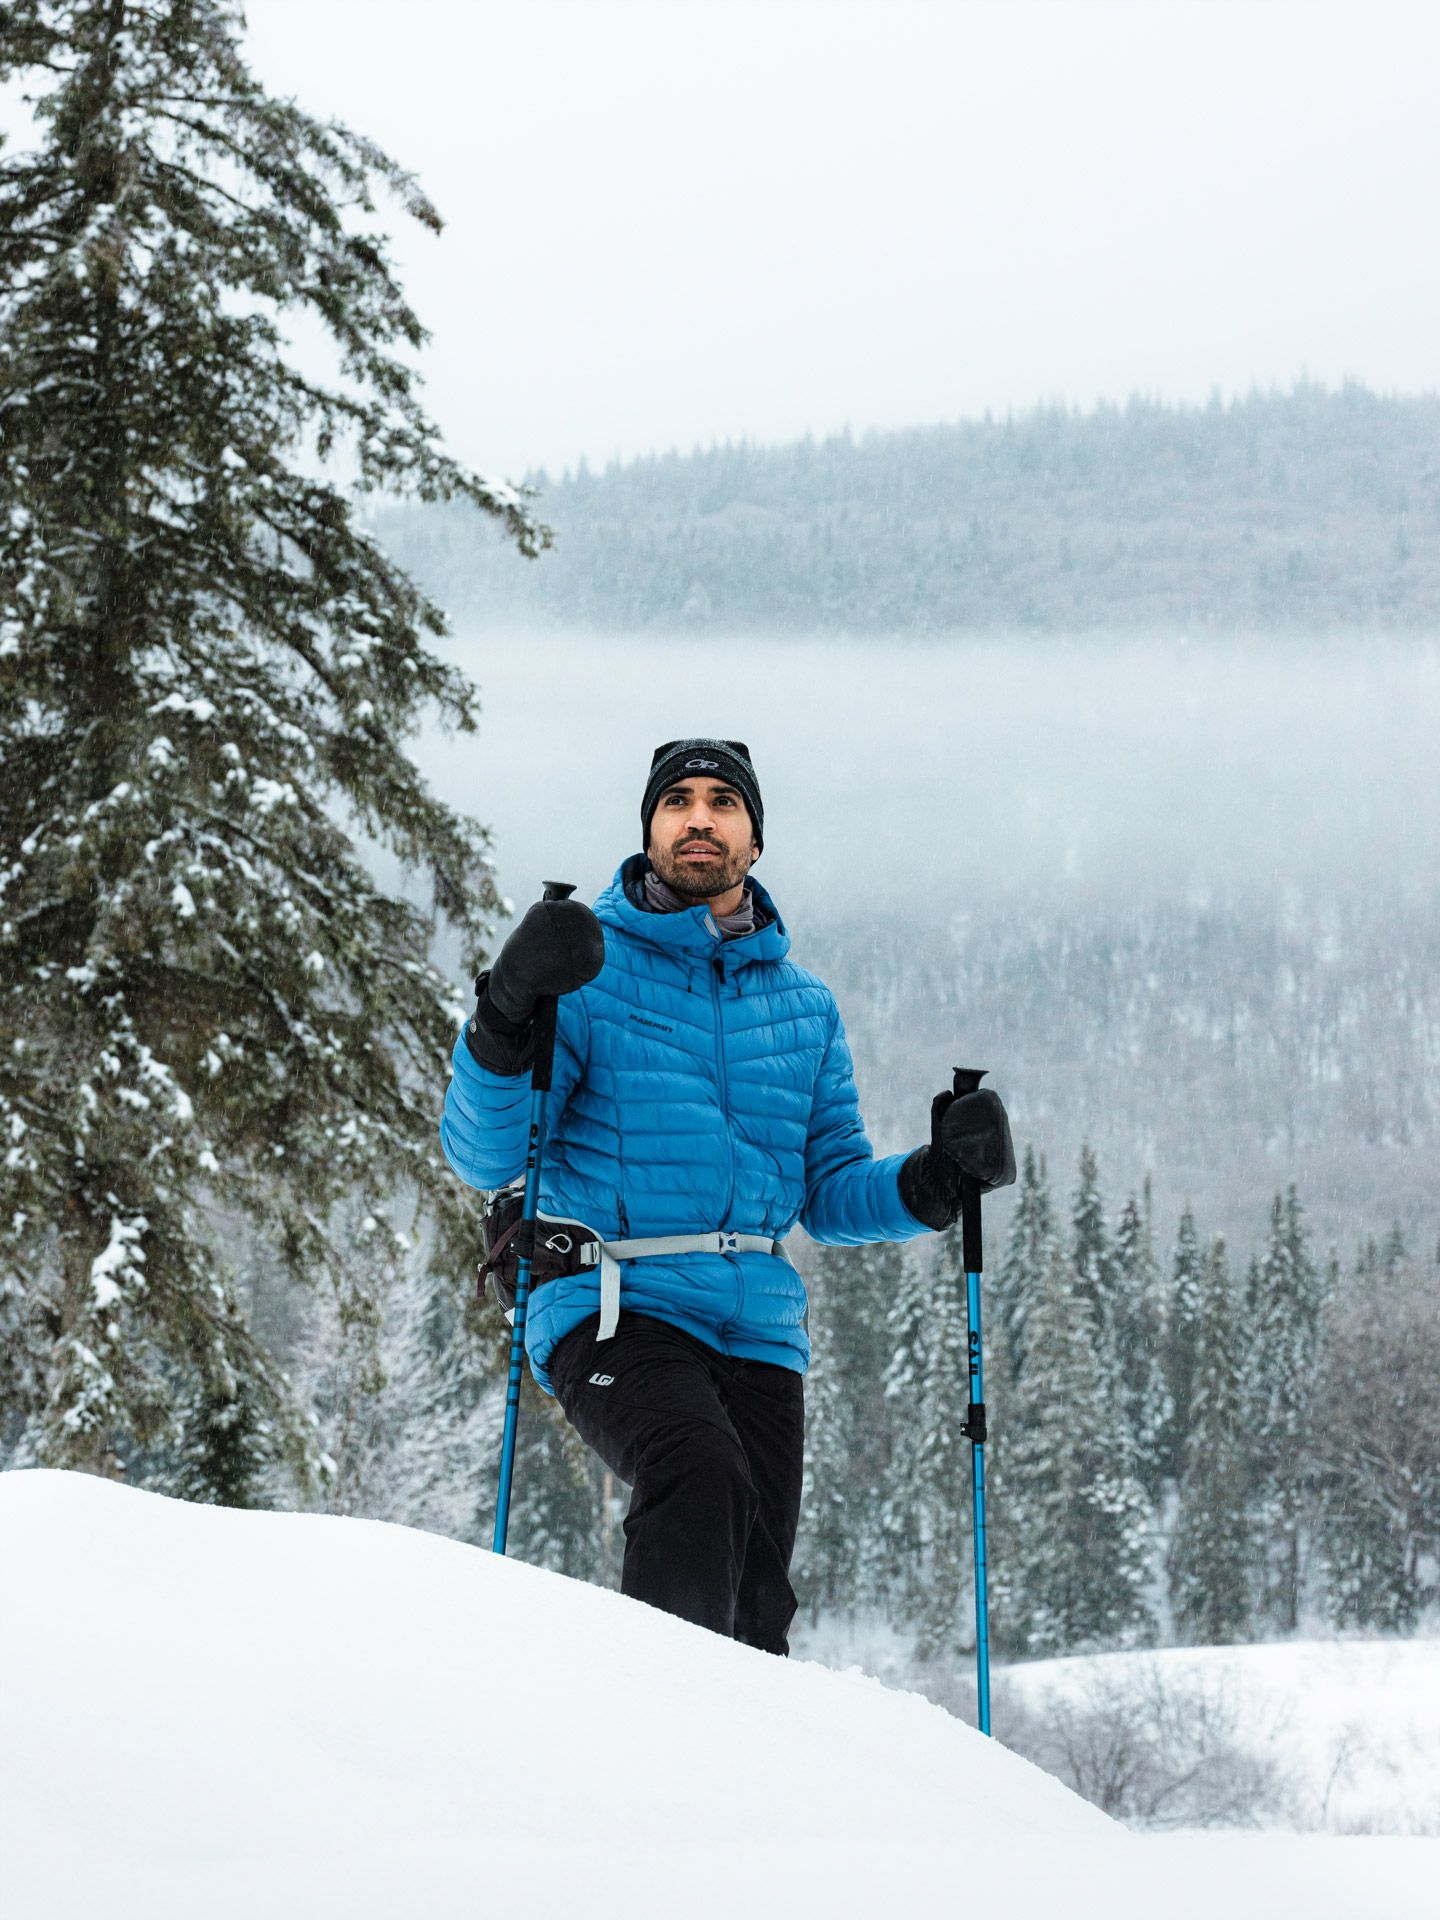 Sail sports gear photographed by Alexi Hobbs of man wearing bright blue jackets treaking in nature in the snow